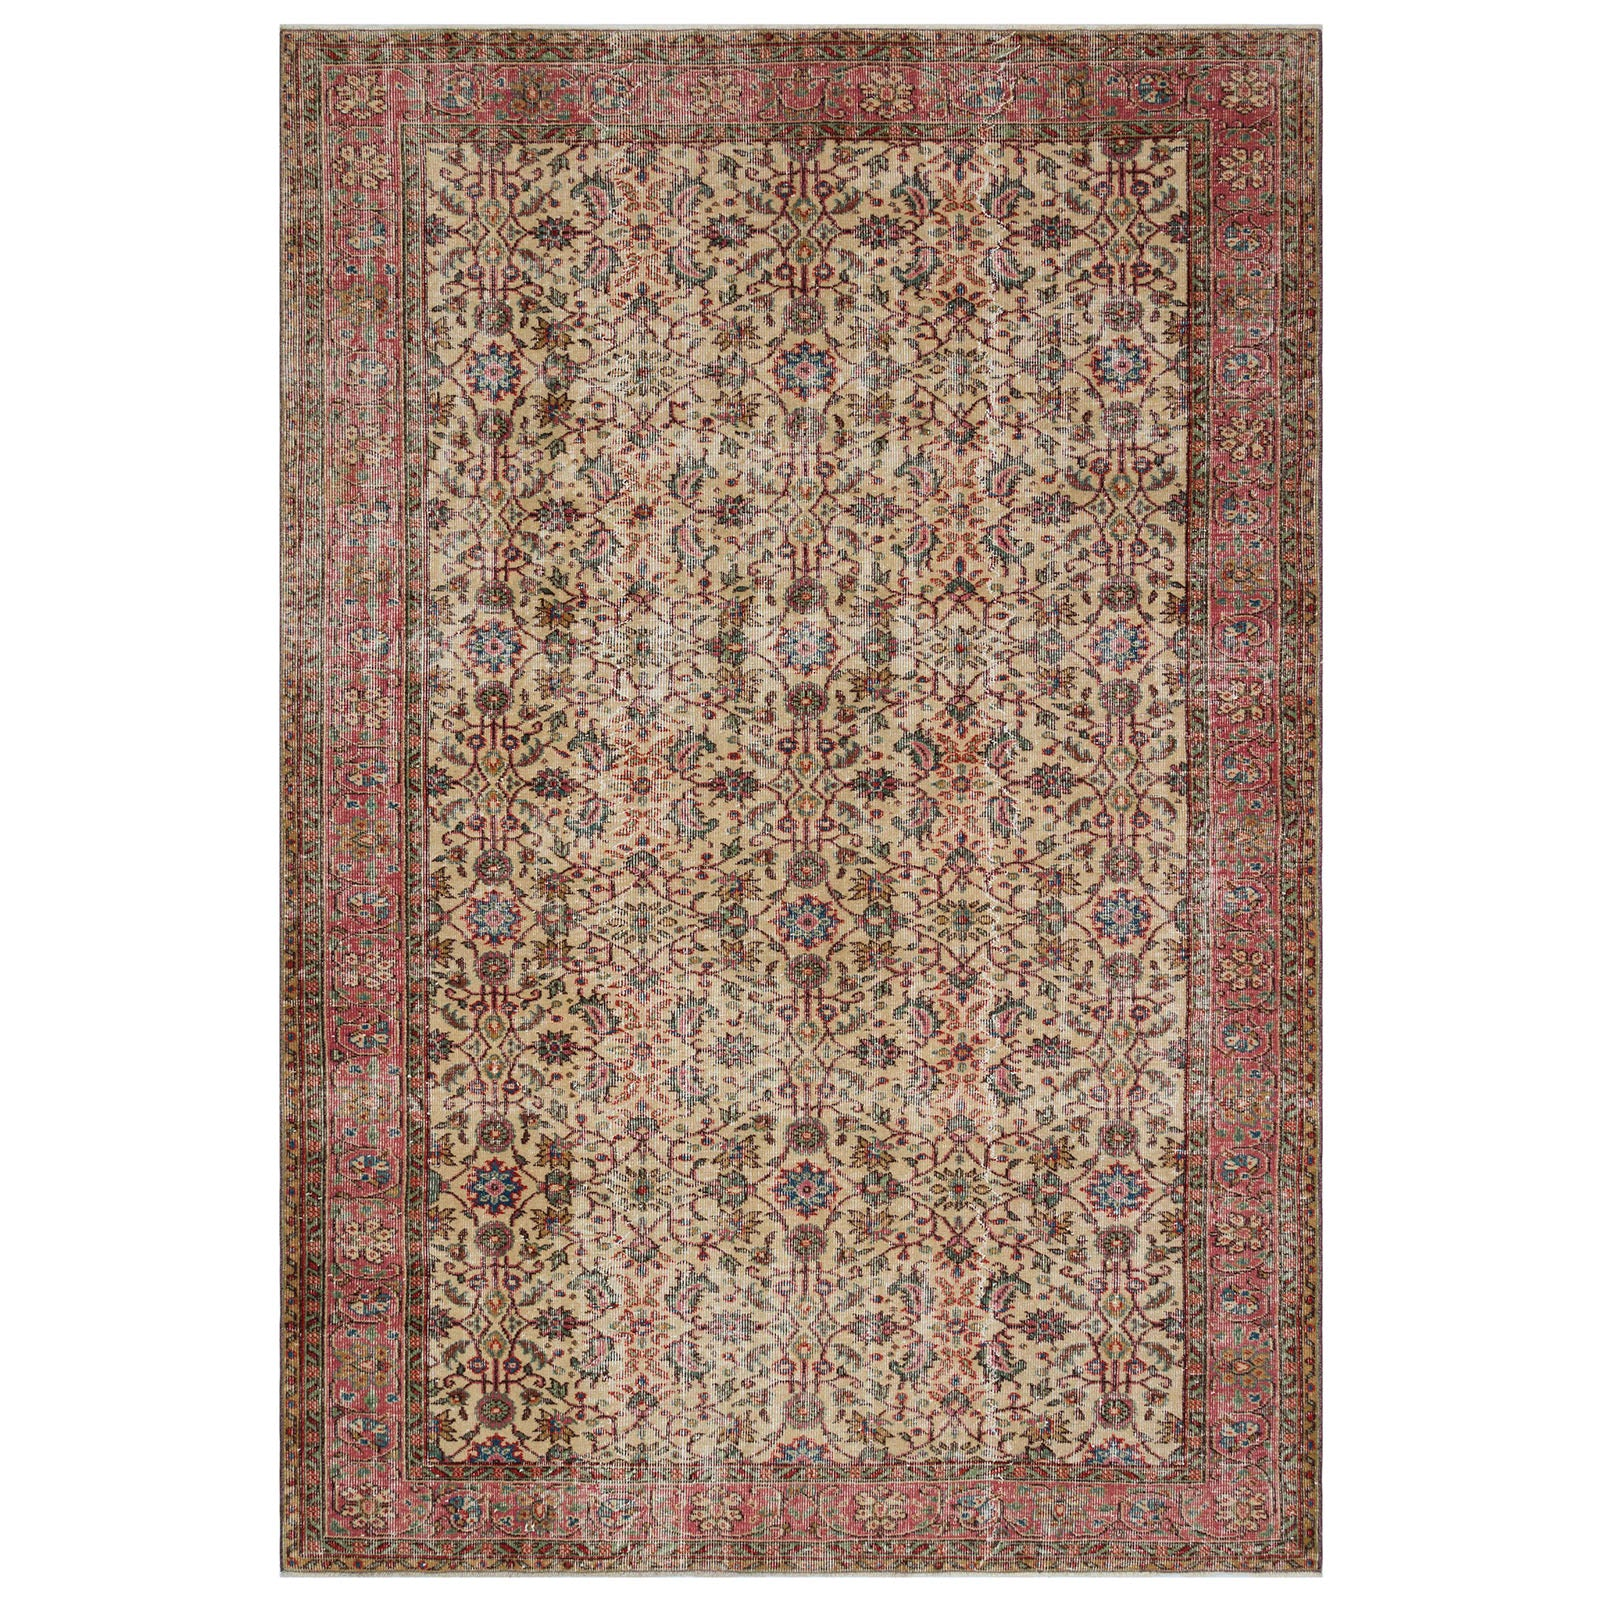 Hali 205X297 CM Bursa Handmade over dyed rug 1816